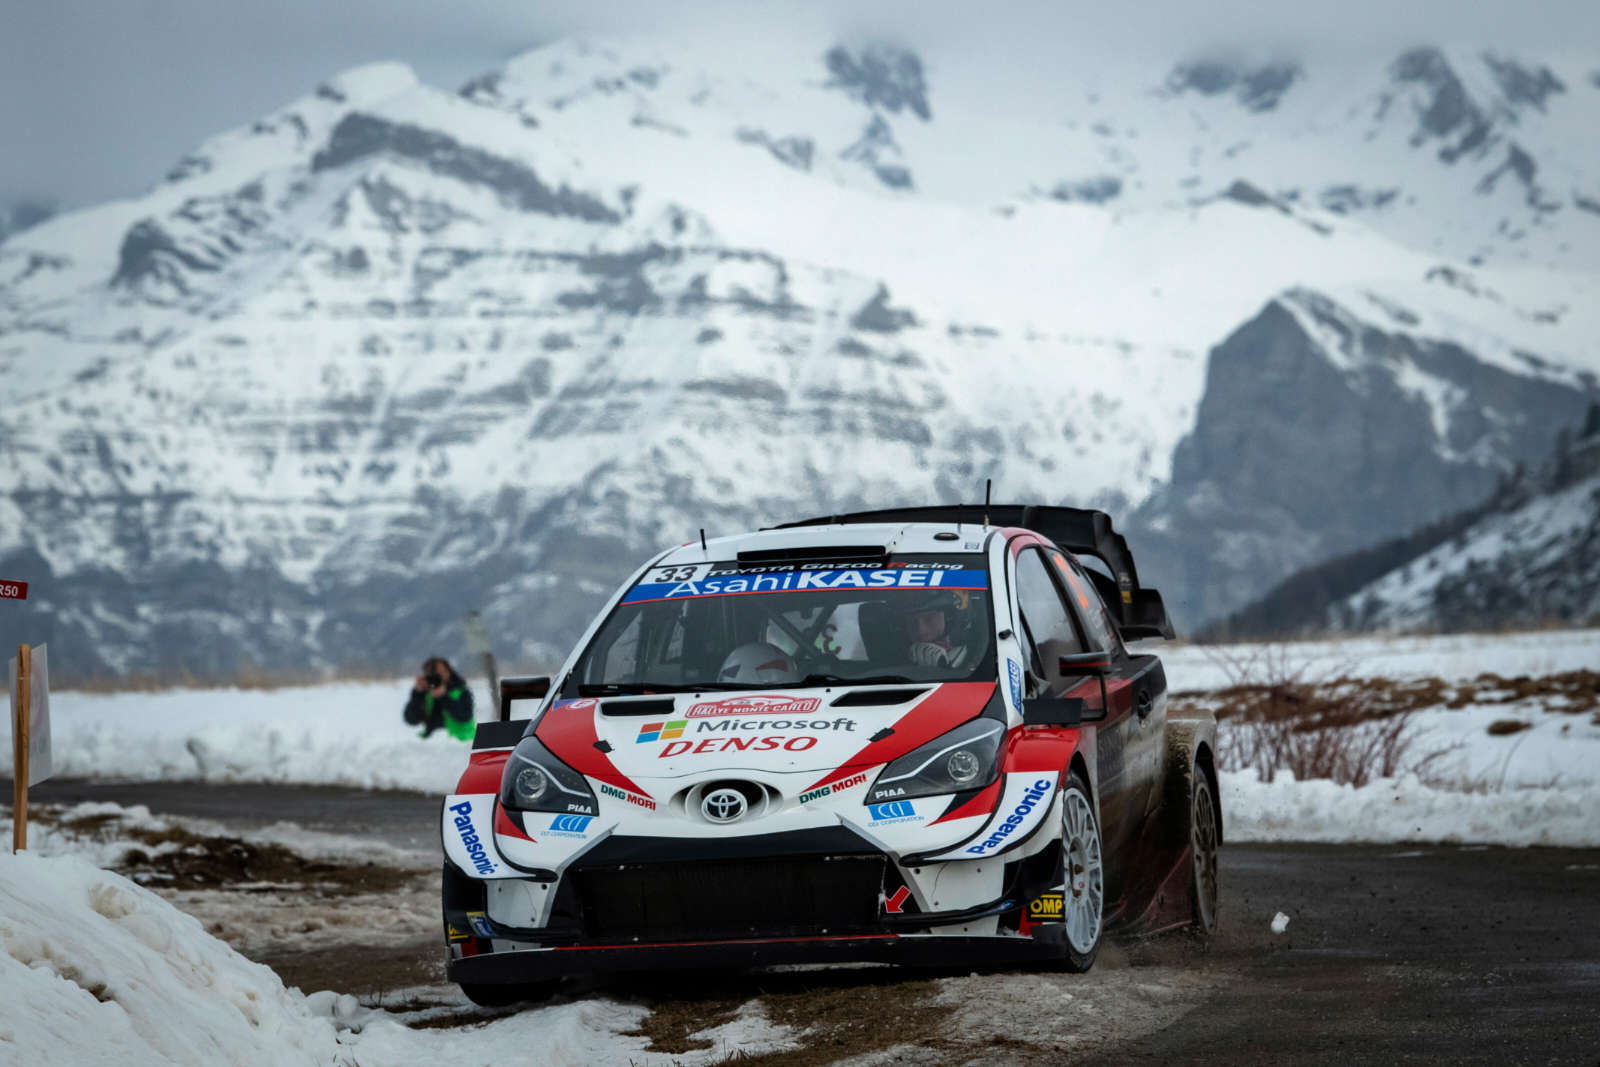 wrc montecarlo neuville evans streaming tv